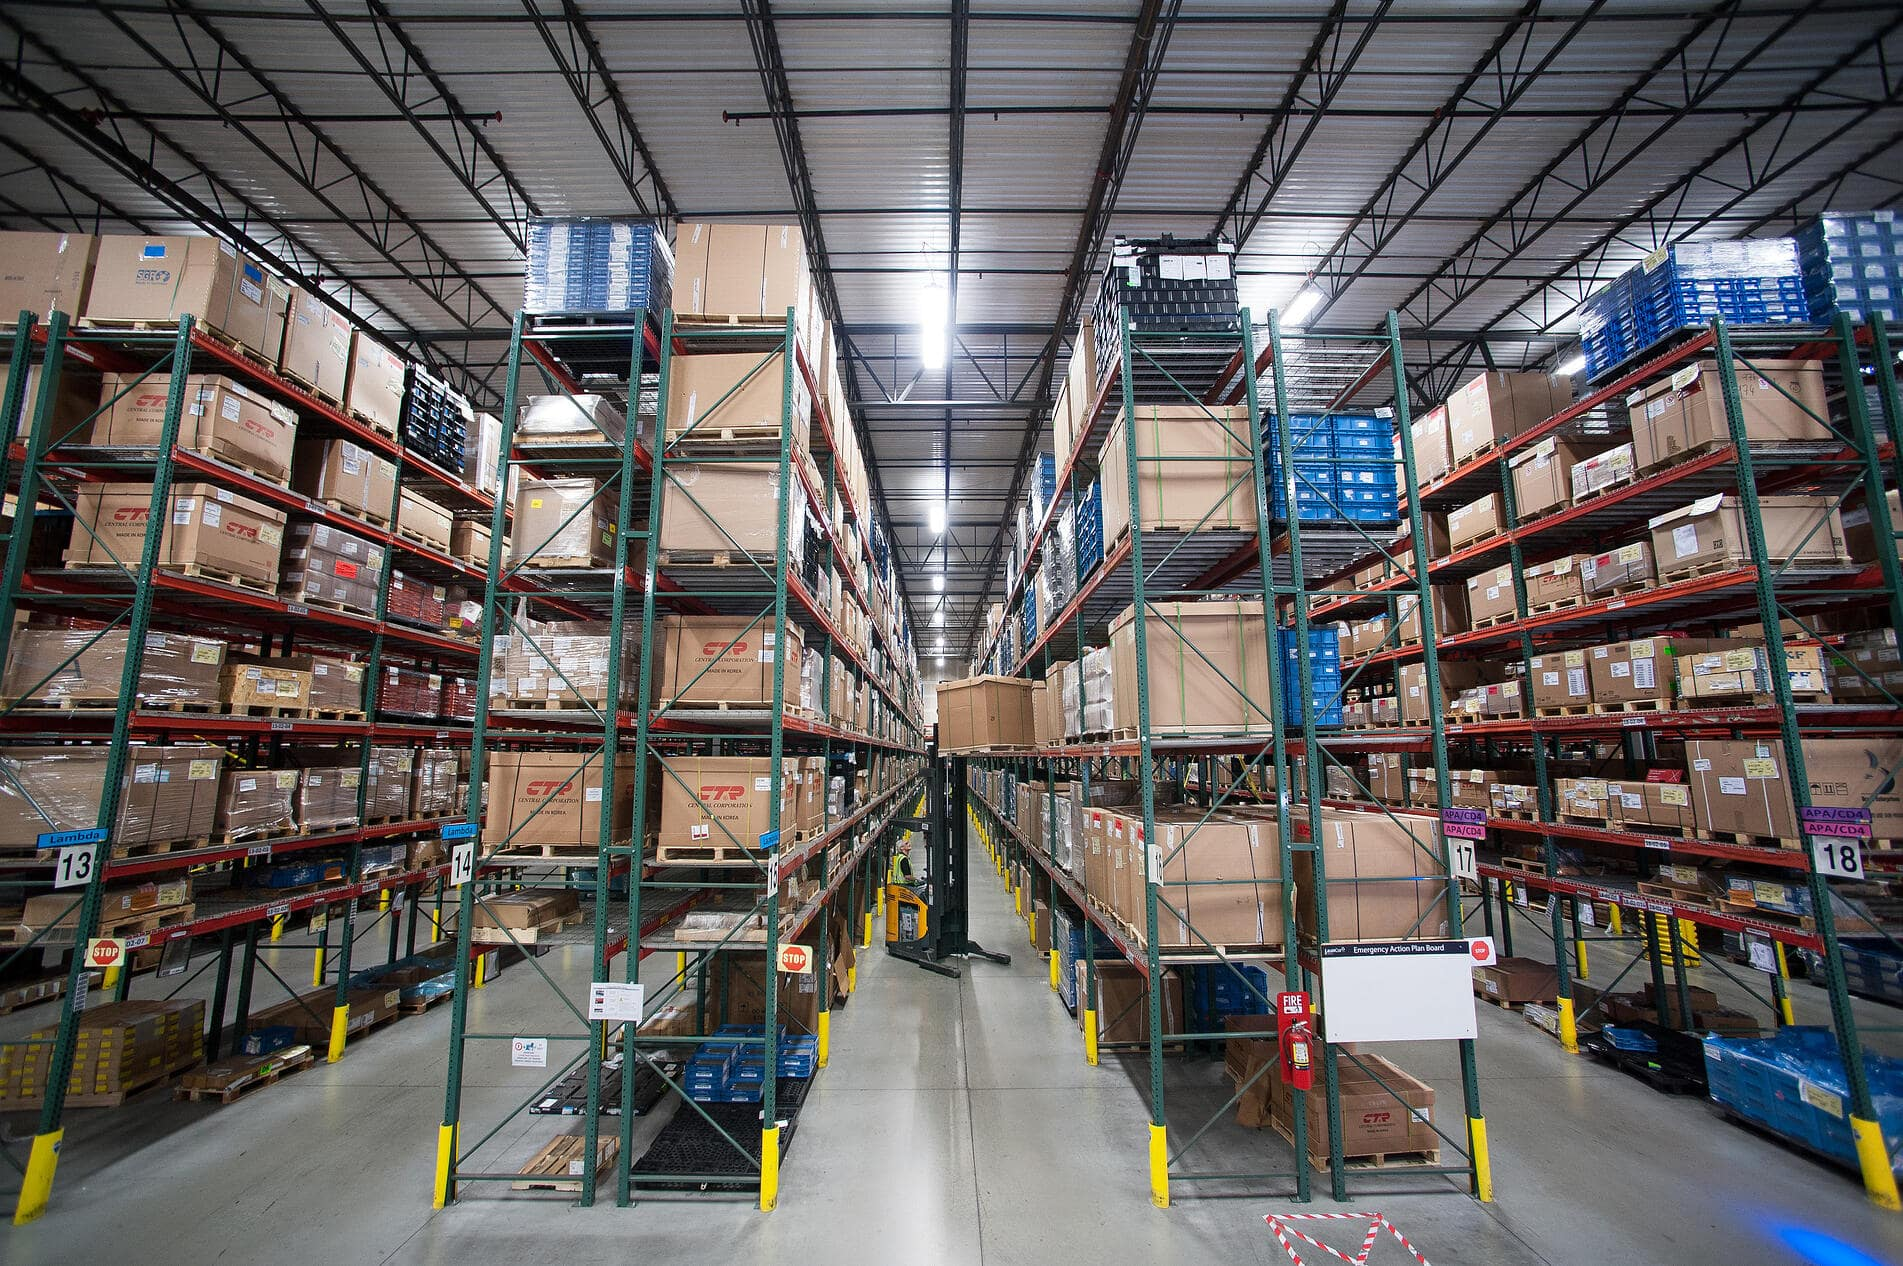 Warehouse with shelves of boxes.